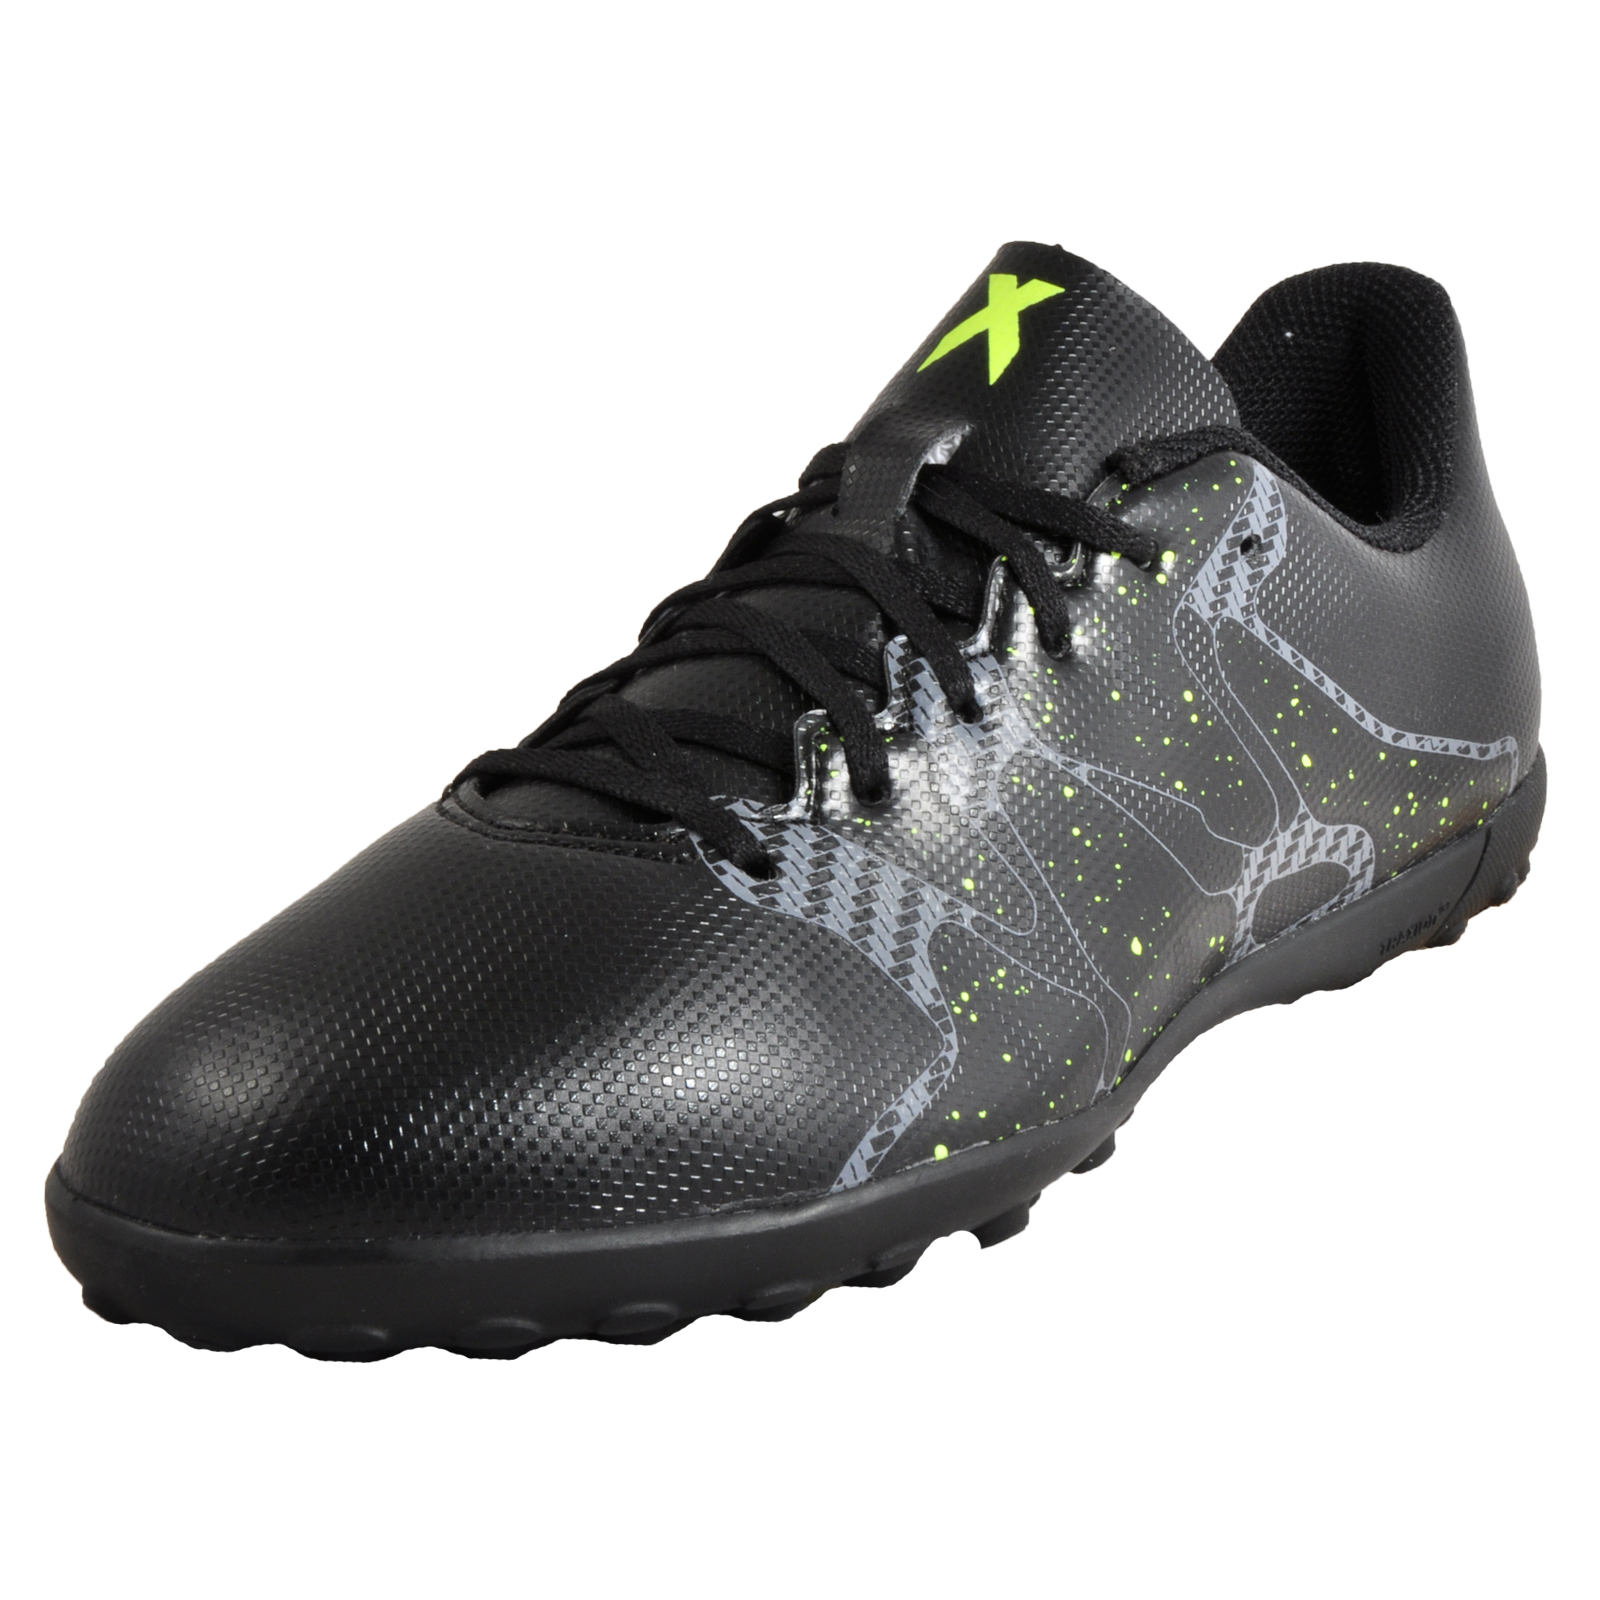 9b38e4ae0ccb Details about Adidas X 15.4 TF Junior Kids Boys Football Astro Turf Trainers  Black